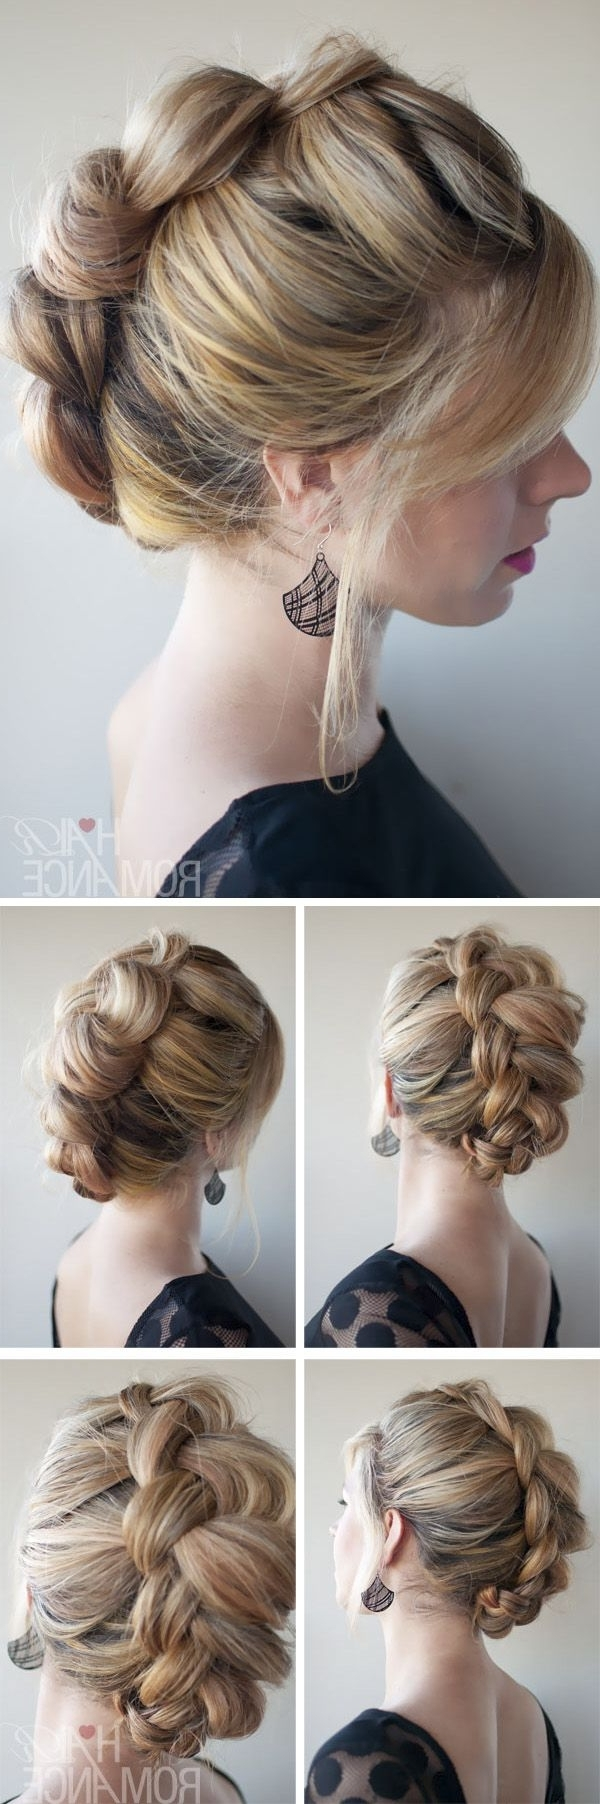 9 Easy And Chic Hairstyle Tutorials With Braids | Chic Hairstyles Regarding Chic Updos For Long Hair (View 7 of 15)